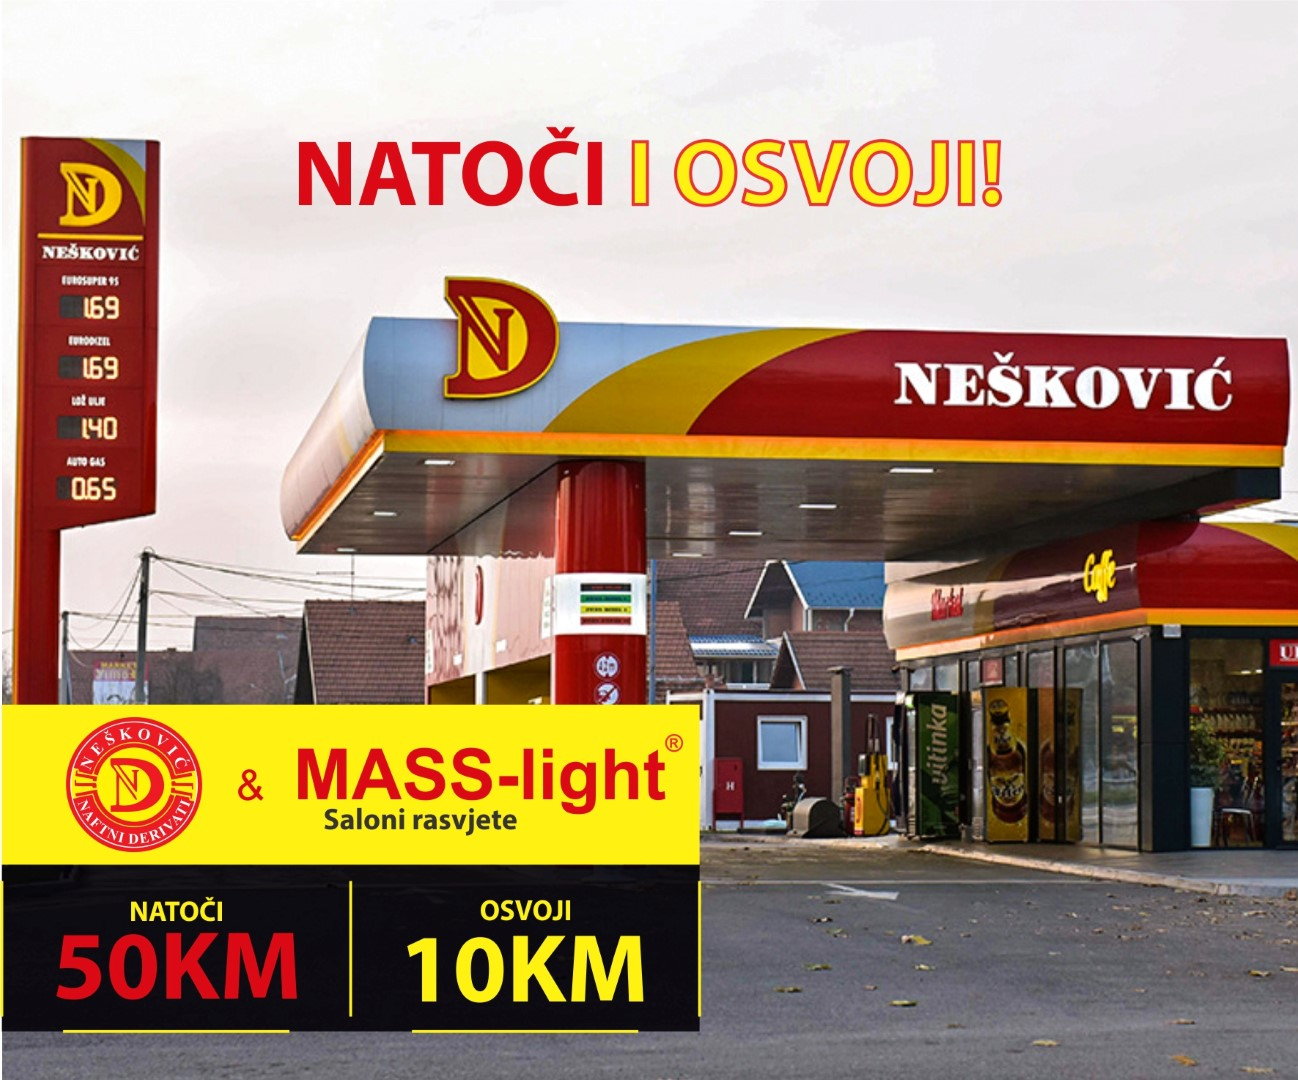 NESKOVIC baner 300x250 Large